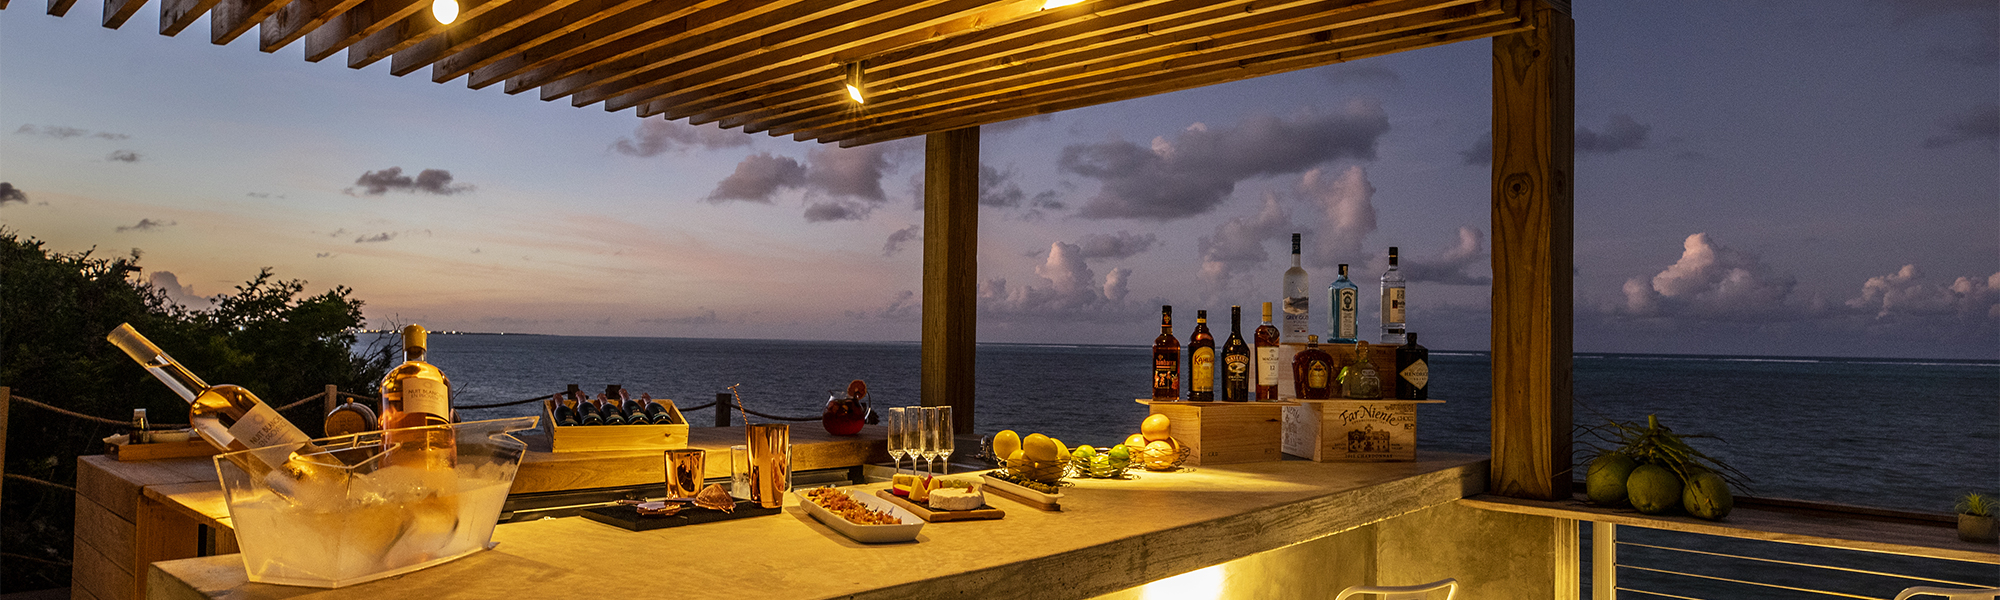 Food and drinks on a beachside bar at dusk